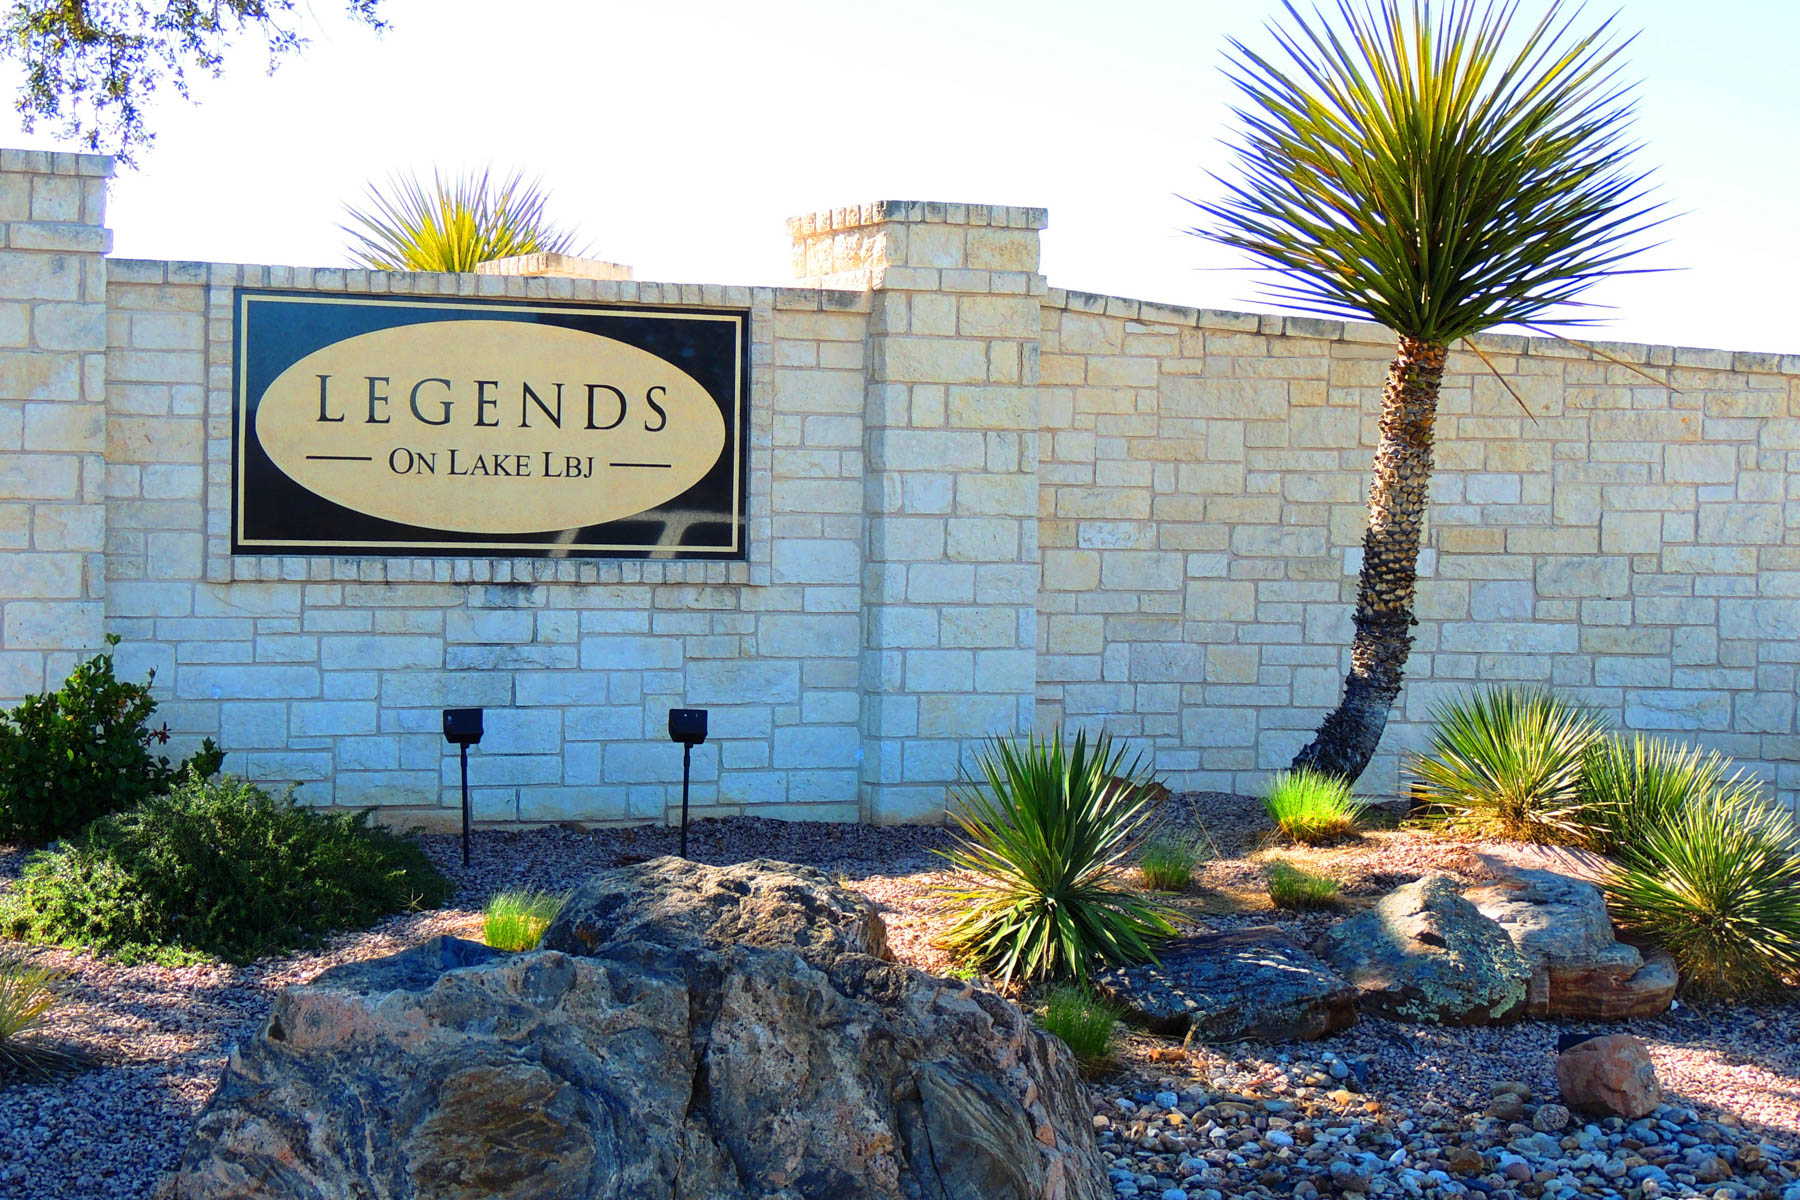 Terreno por un Venta en Excellent Building Site in The Legends Lot 6004 Wildflower Kingsland, Texas 99999 Estados Unidos